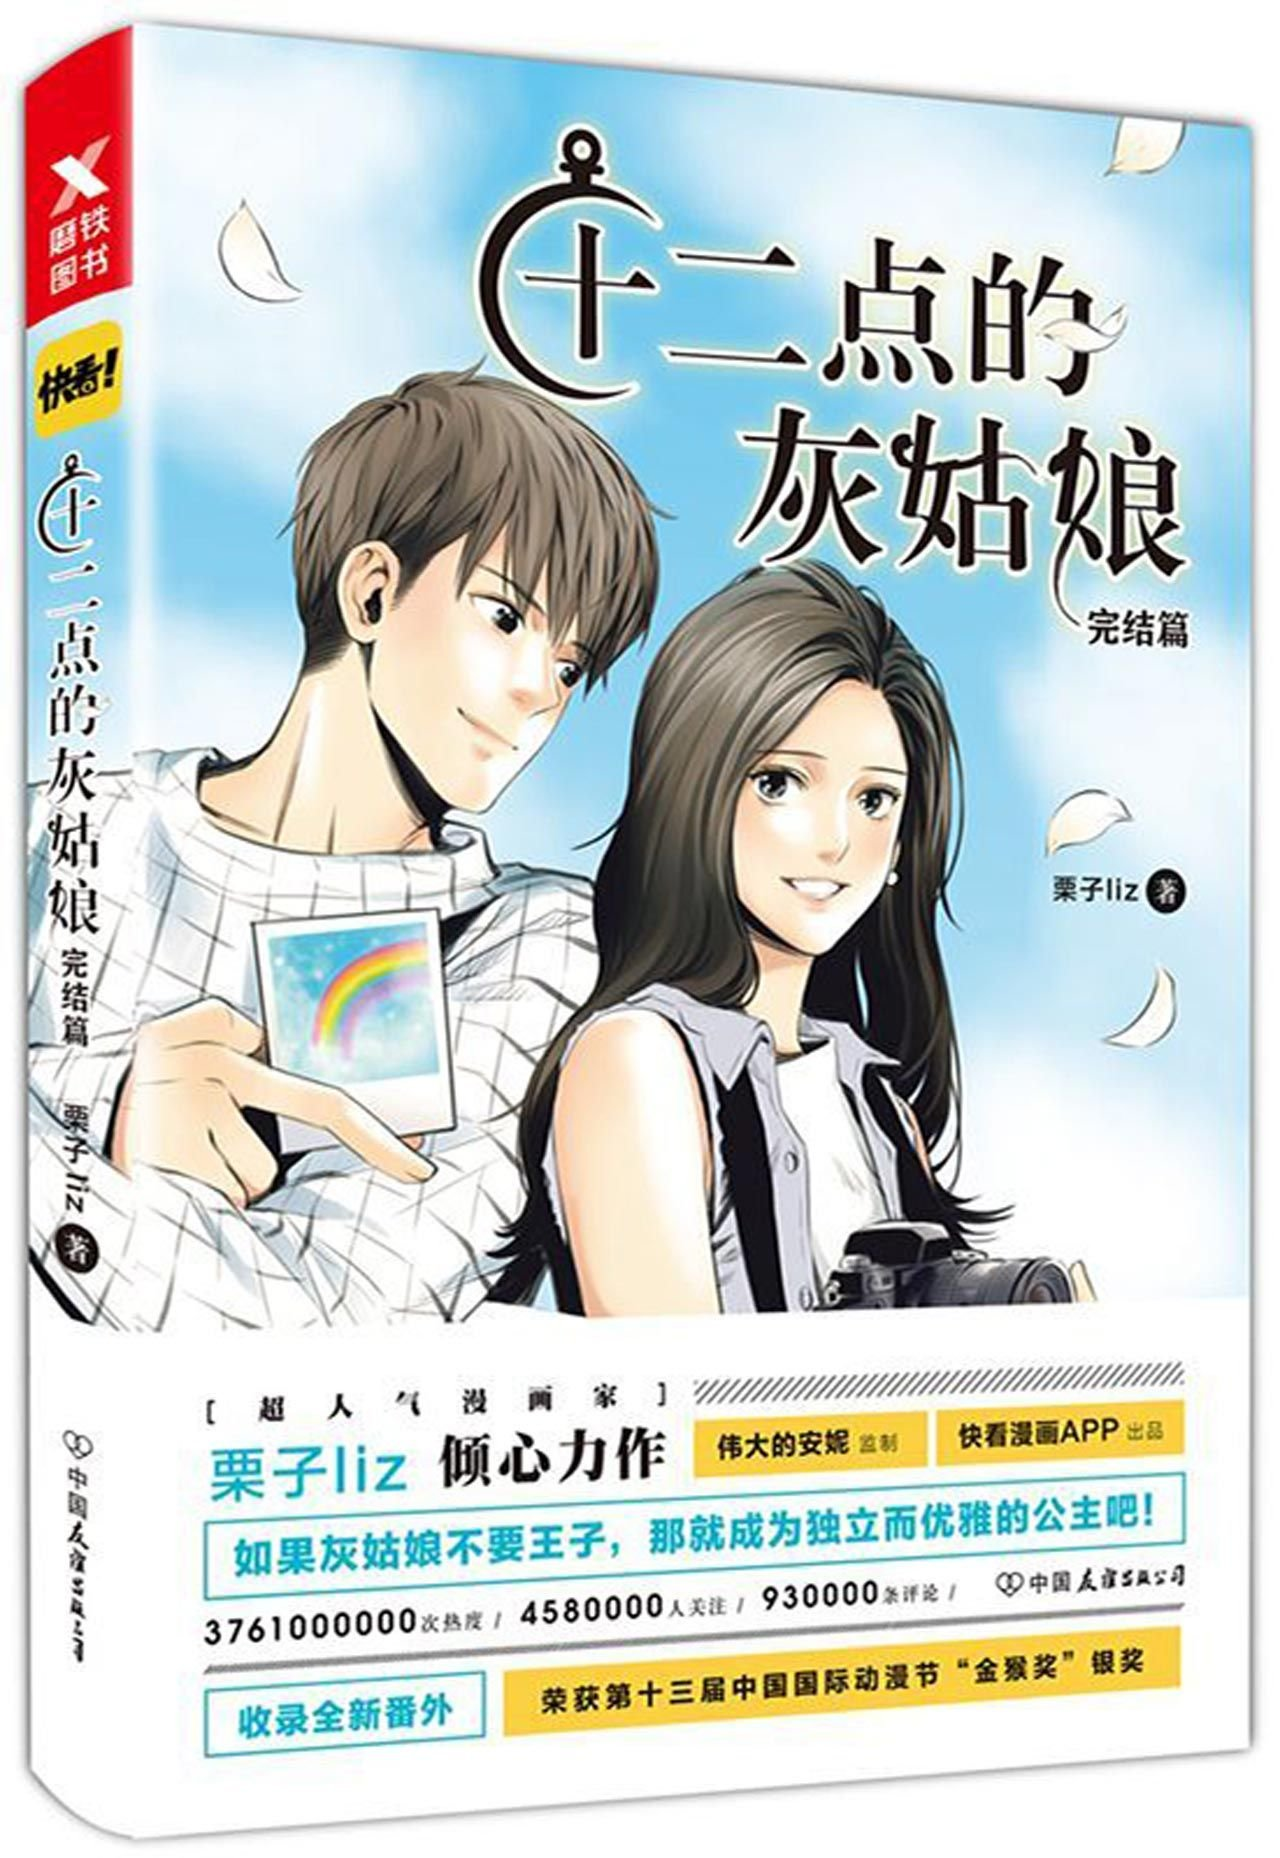 Read Online Cinderella at Twelve O'clock (Finale) (Chinese Edition) PDF